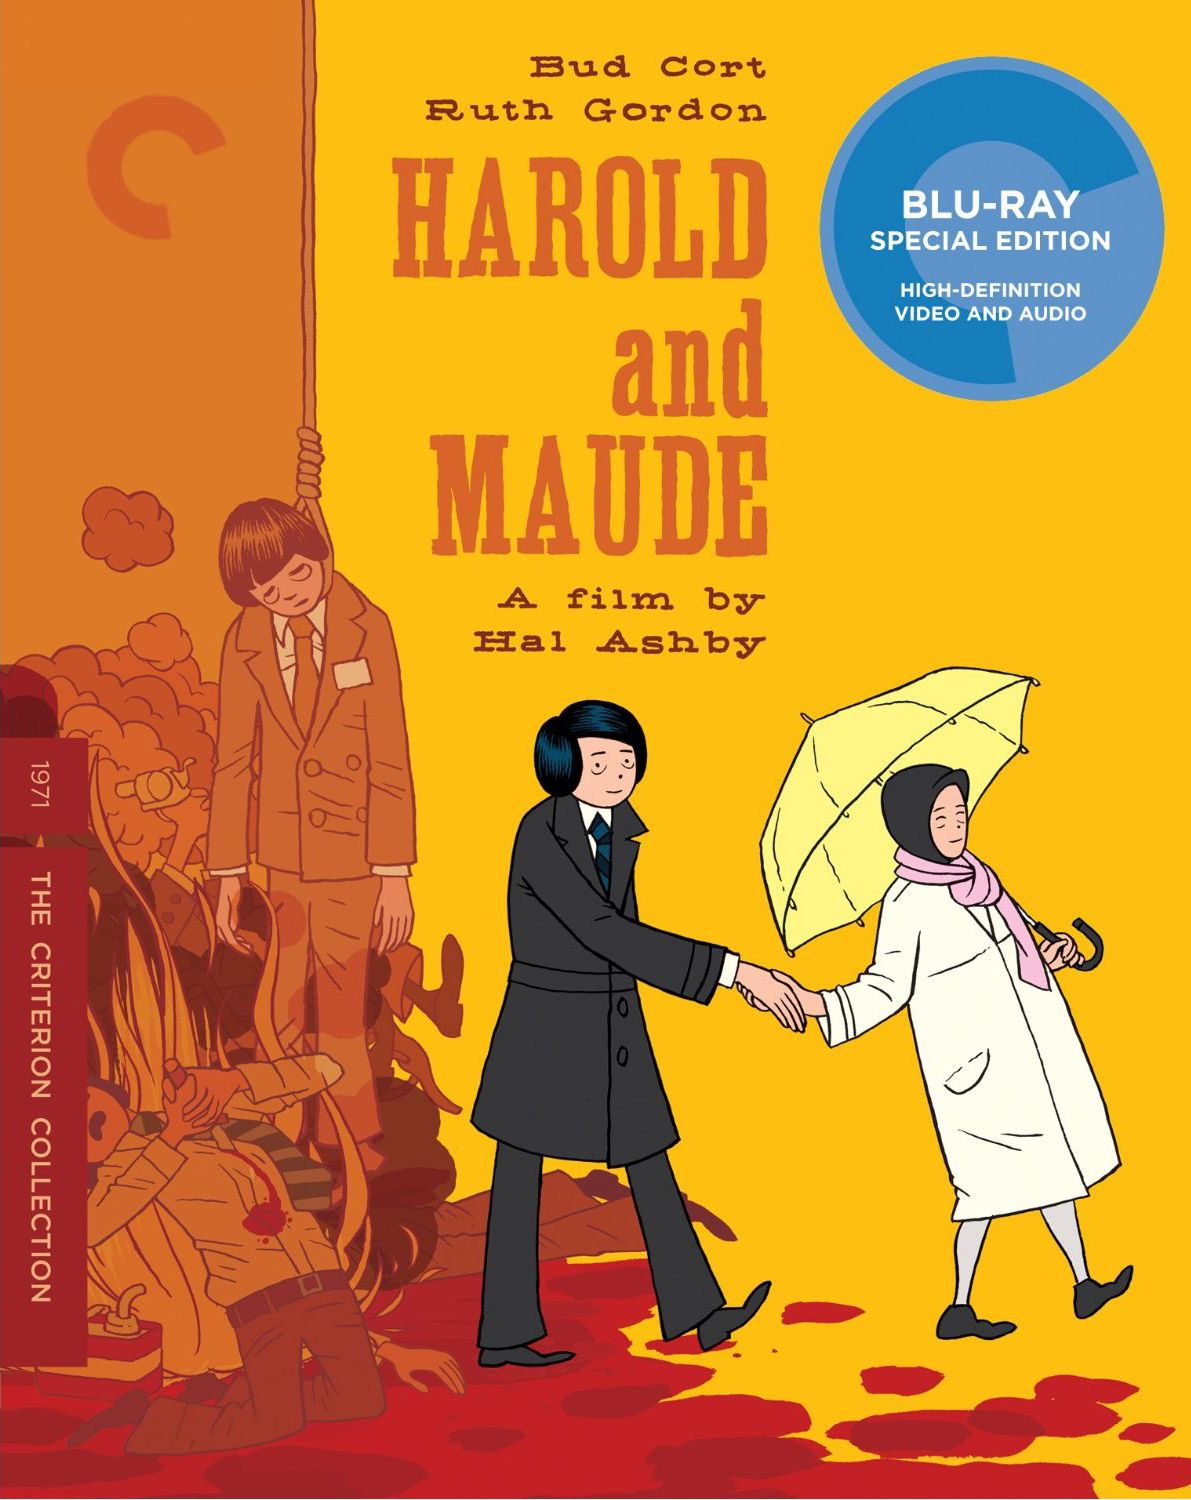 Publicity still for Harold and Maude